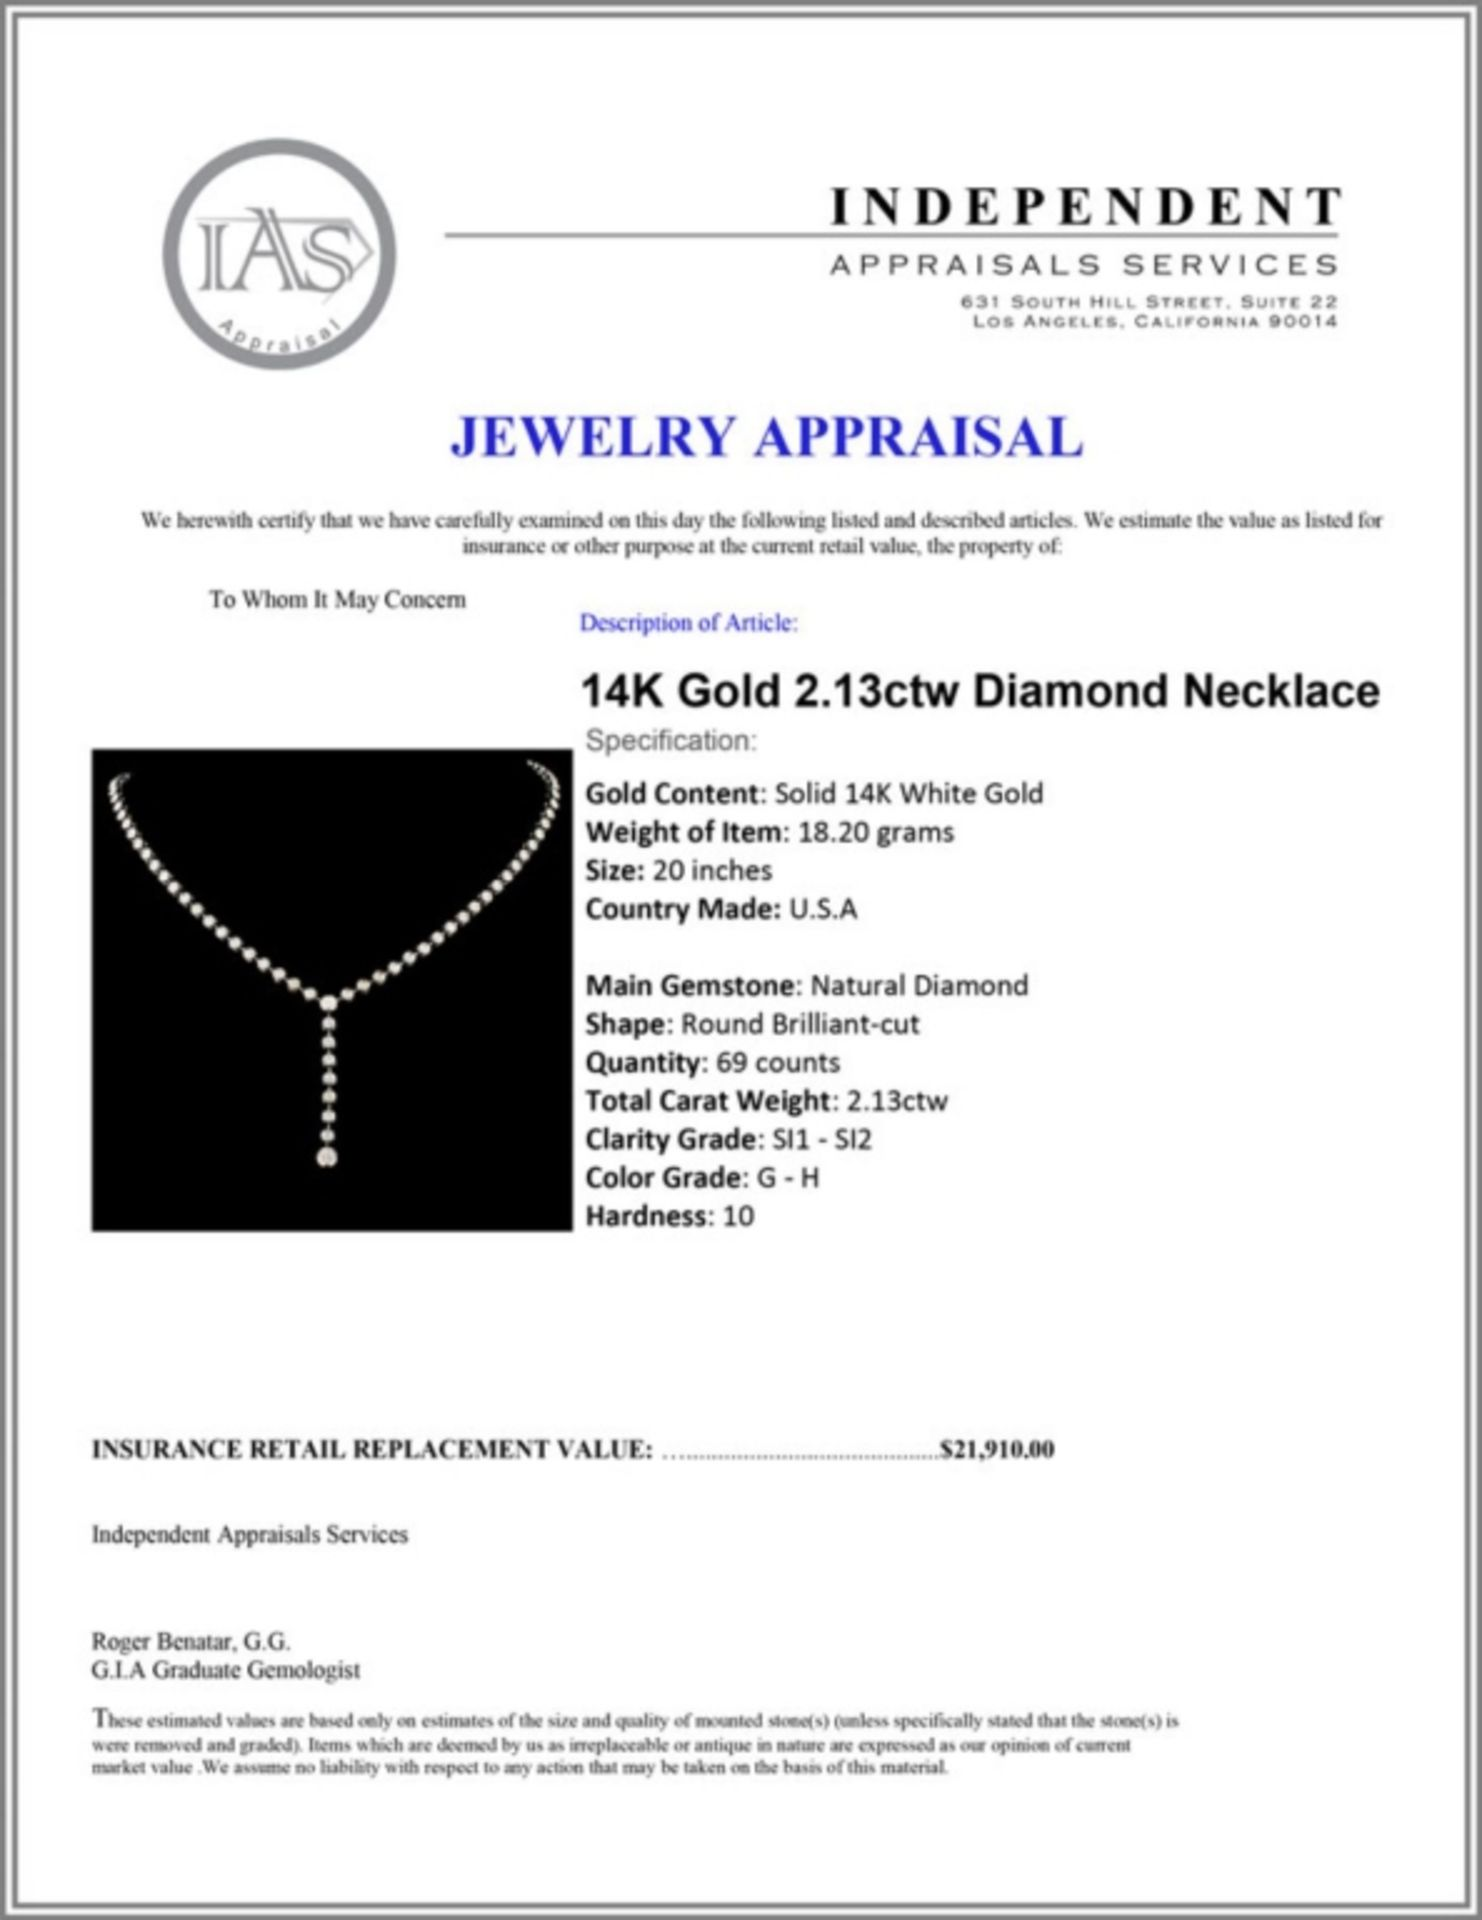 14K Gold 2.13ctw Diamond Necklace - Image 4 of 4